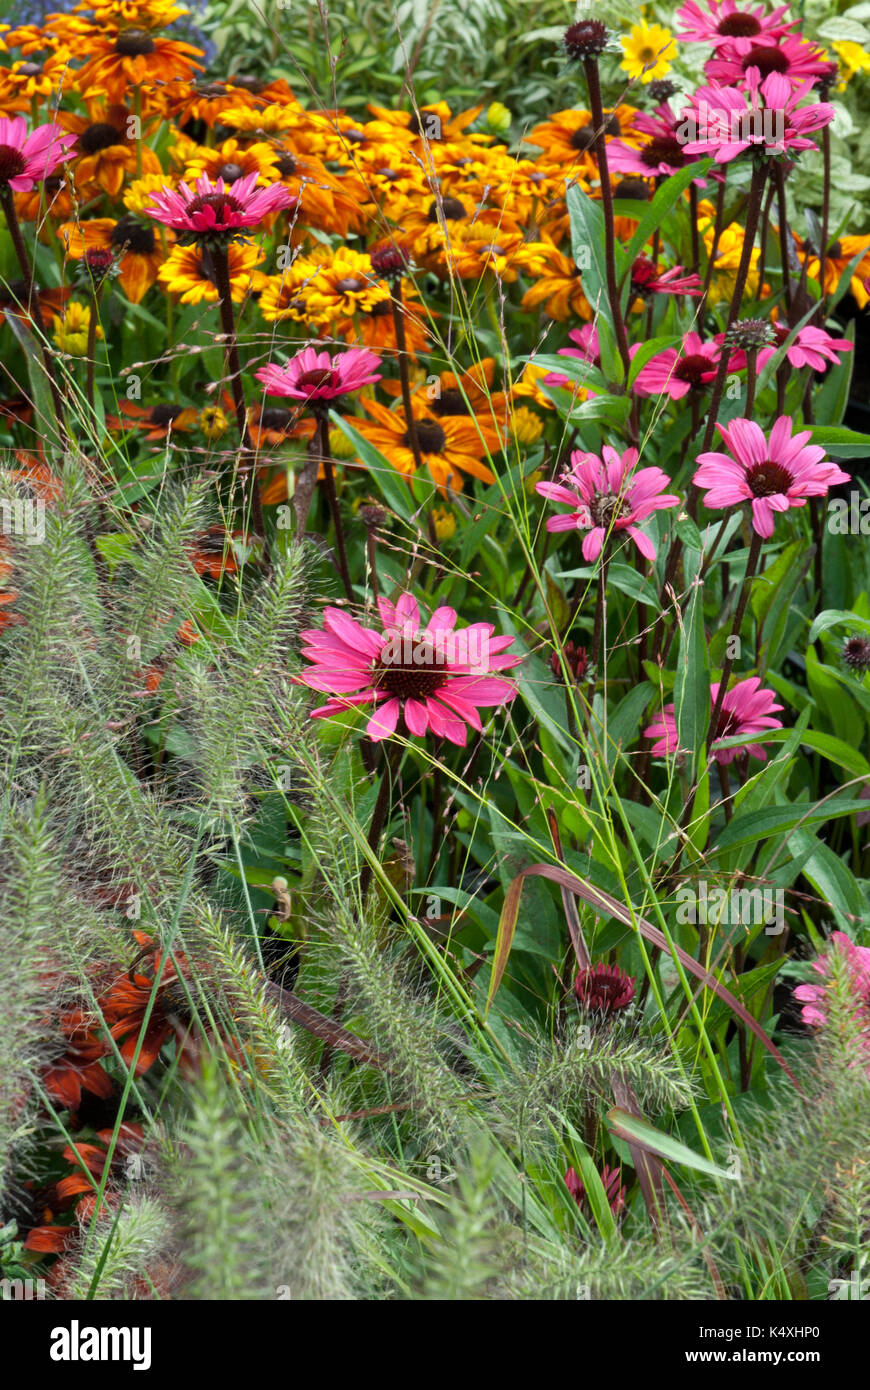 Mixed herbaceous border with echinacea, cone flower, (asteraceae, herbaceous, herbaceous), various colours. - Stock Image